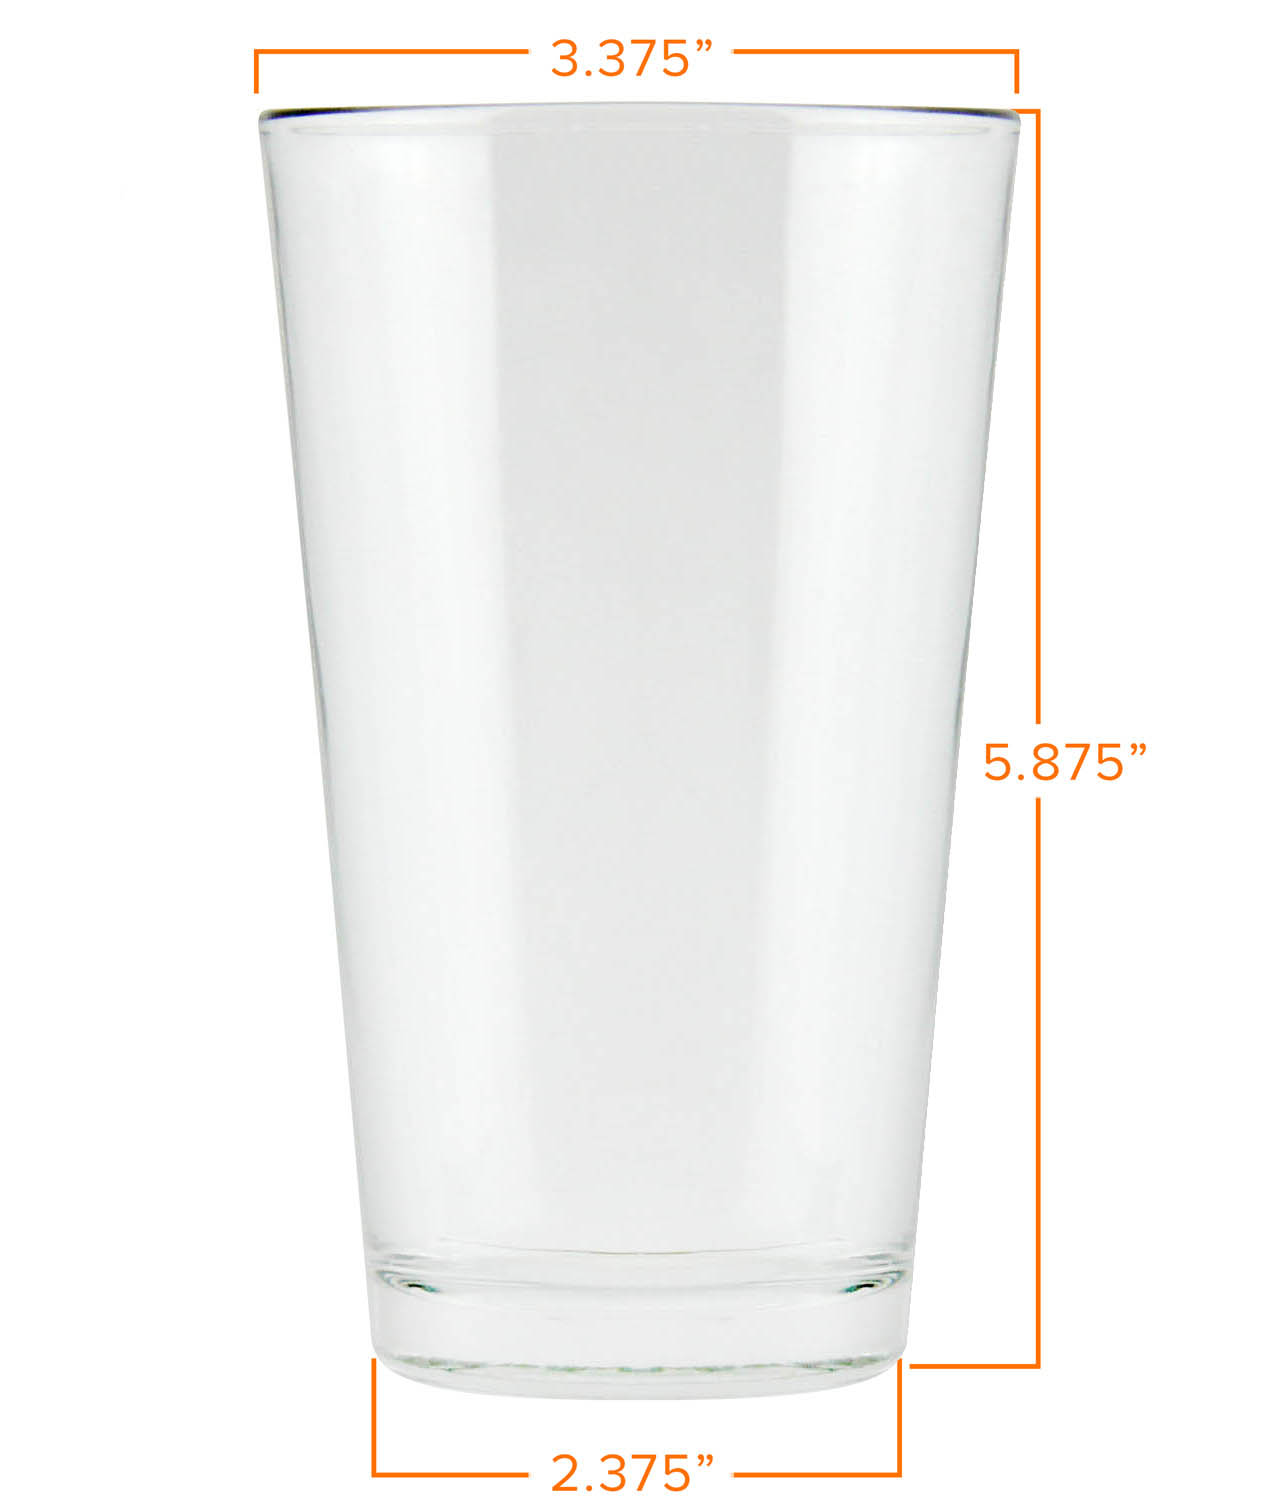 pint glass dimensions - 16 Oz Glass